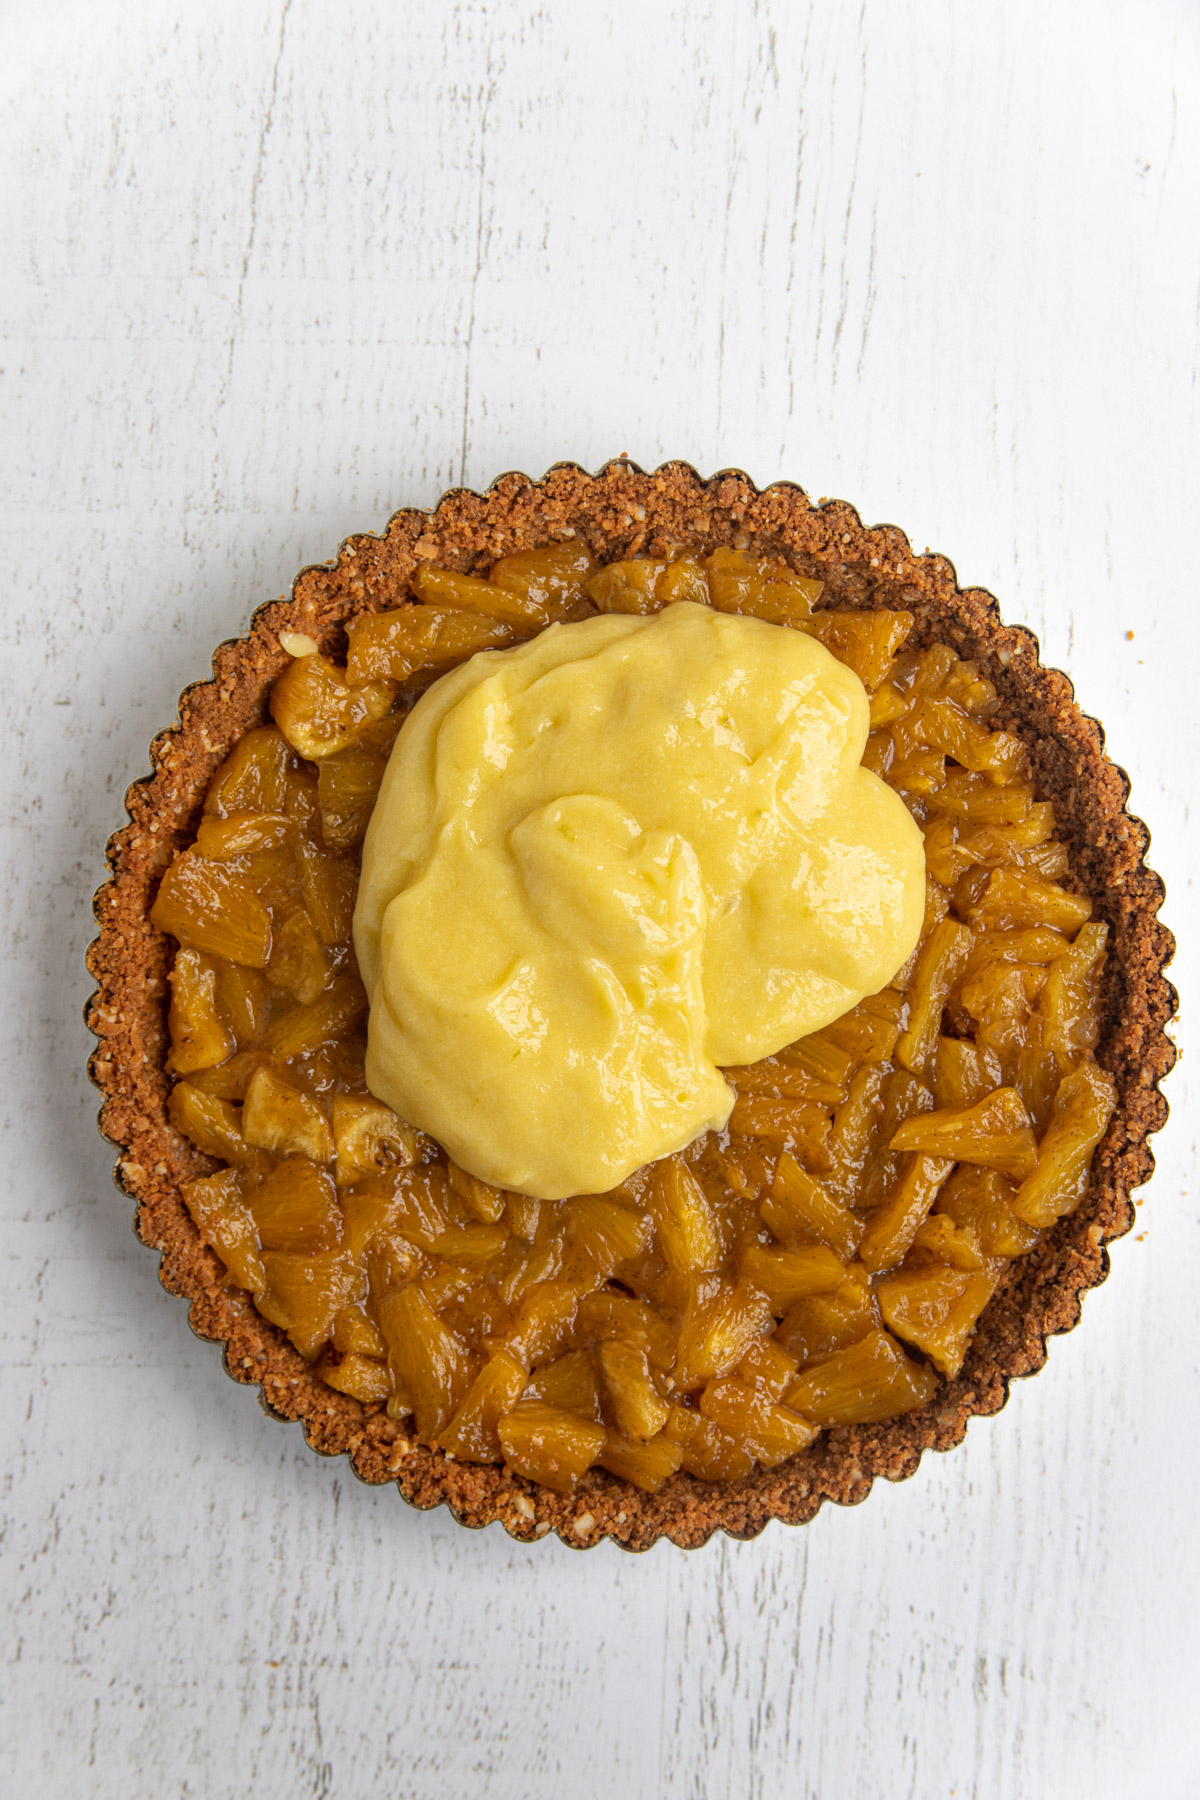 Cookie Crust filled with the Roasted Pineapple and some of the lime curd added on top